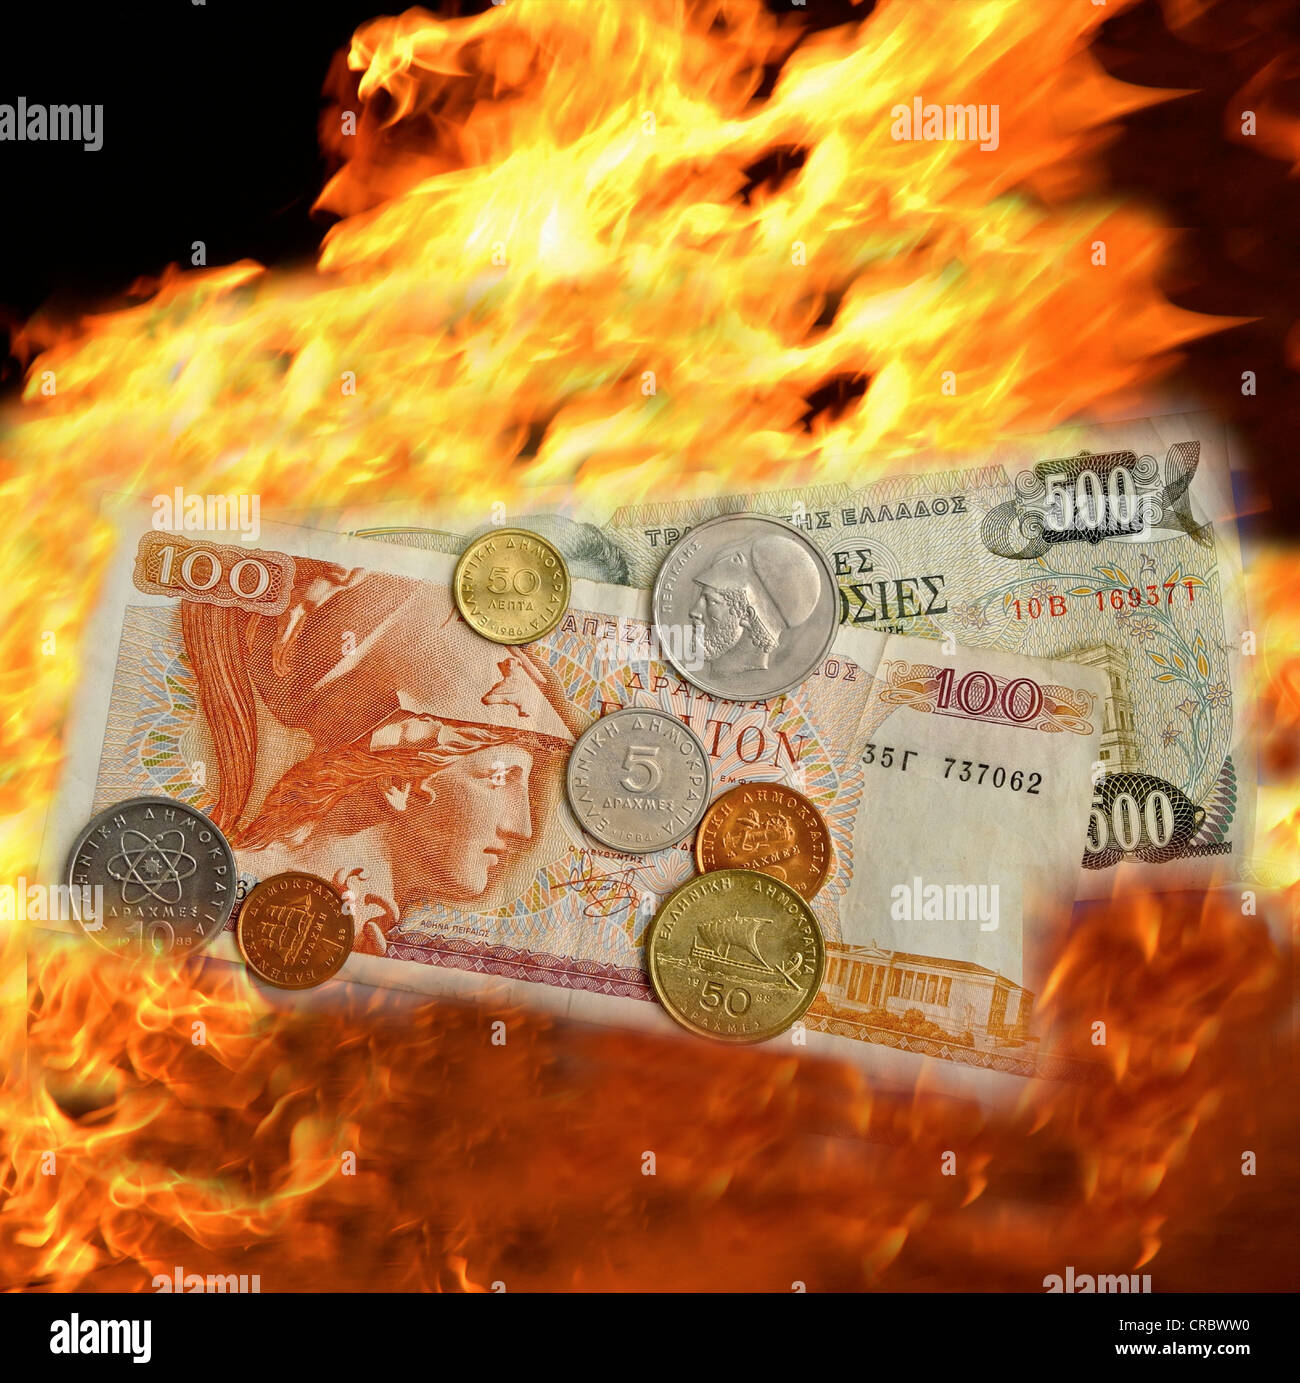 Drachma burning in flames Greek currency - Stock Image